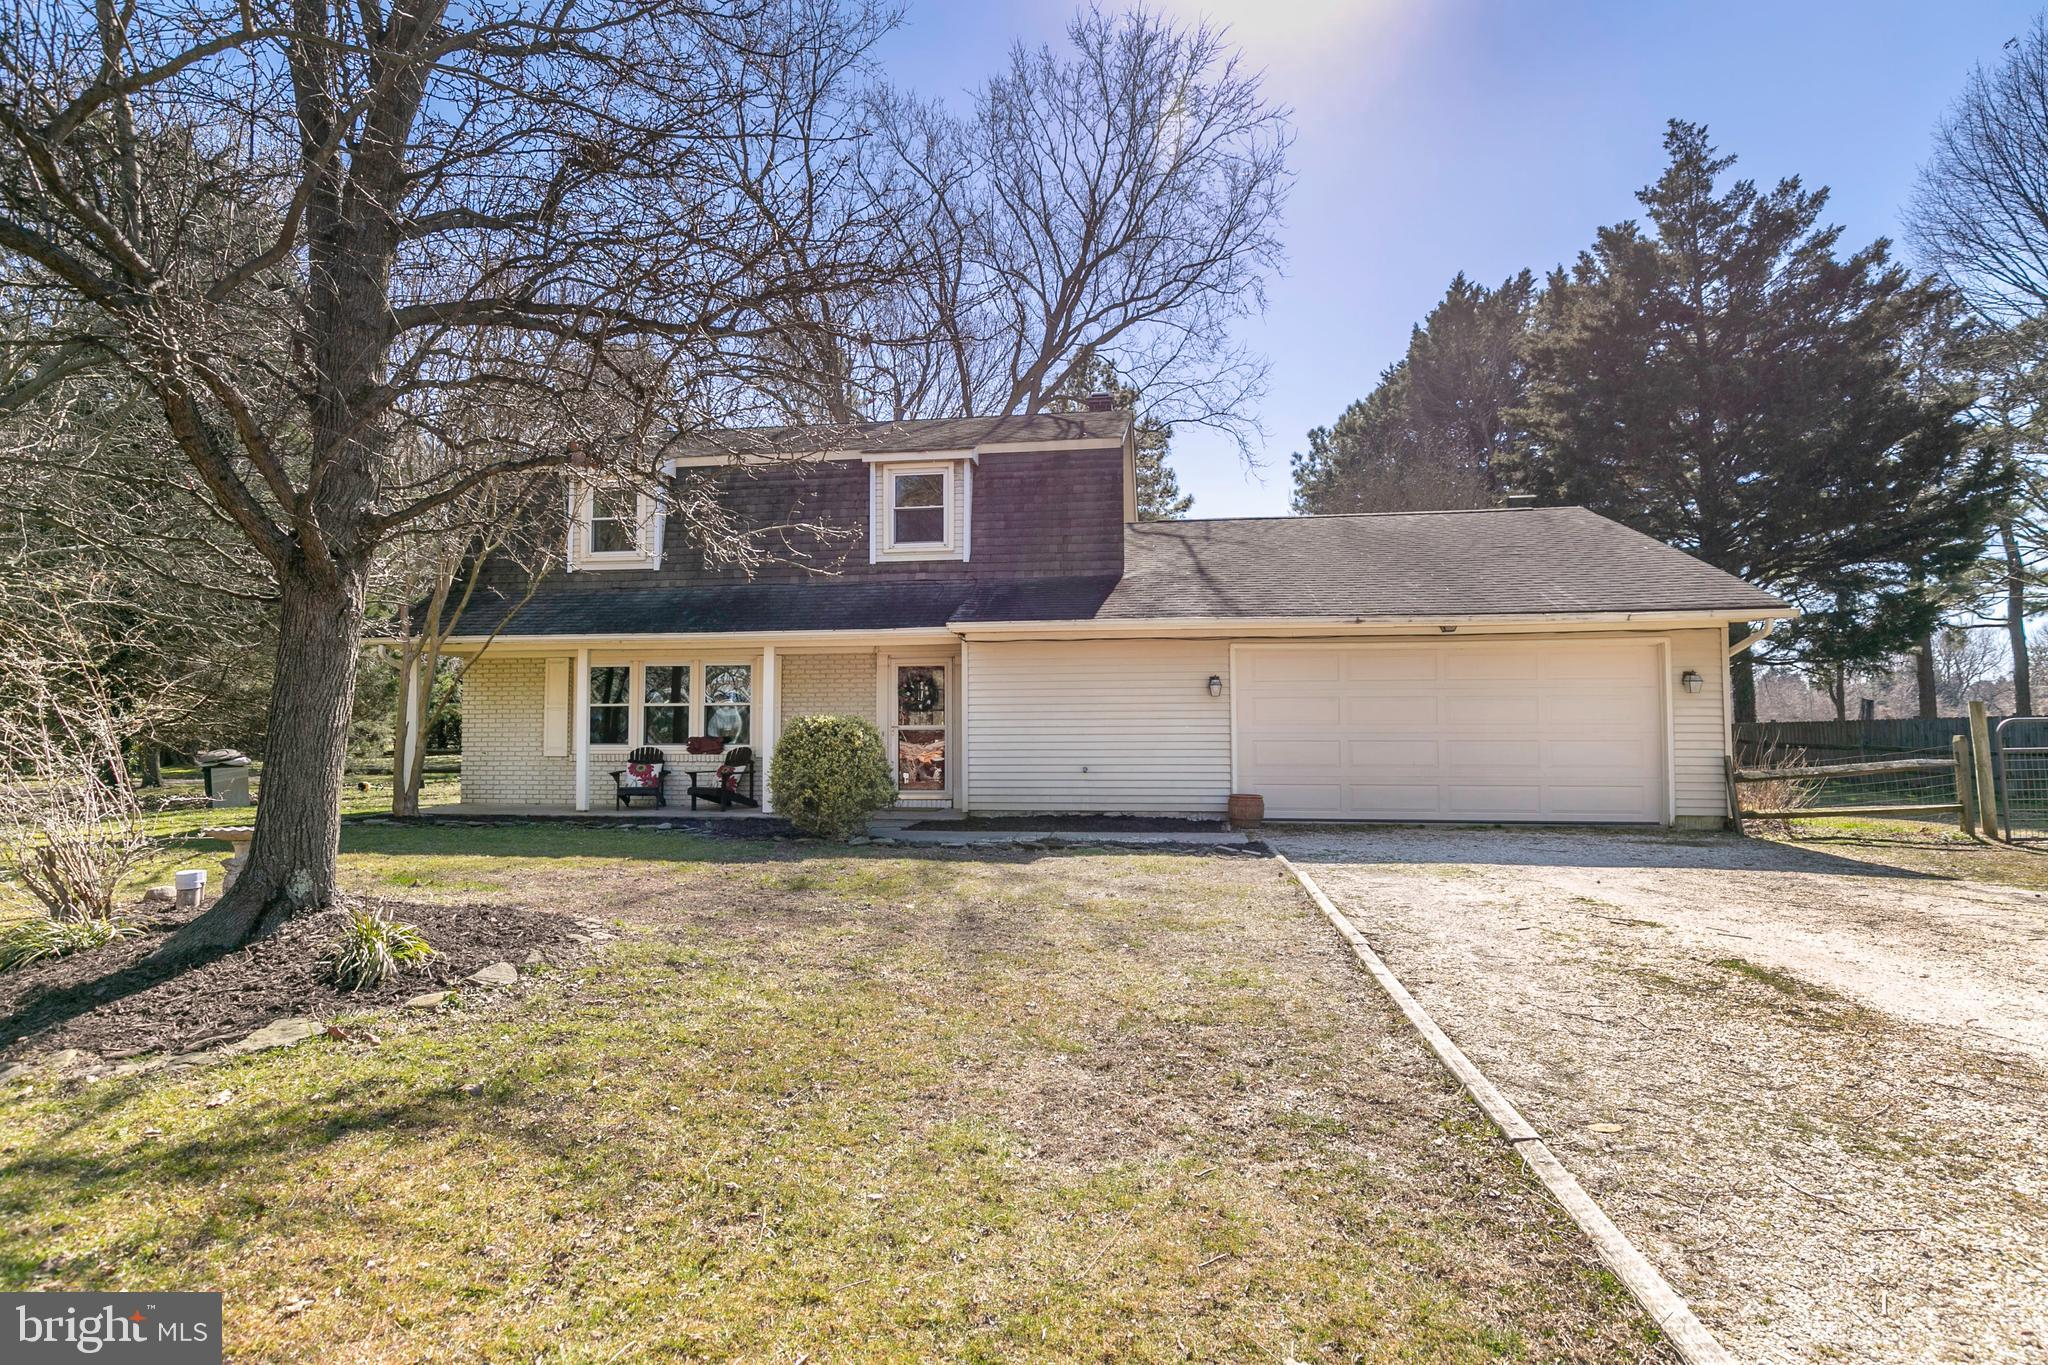 JUST LISTED!...THIS CHARMING COLONIAL IS SITED ON A QUIET CUL-DE-SAC with a FULLY FENCED BACK YARD!